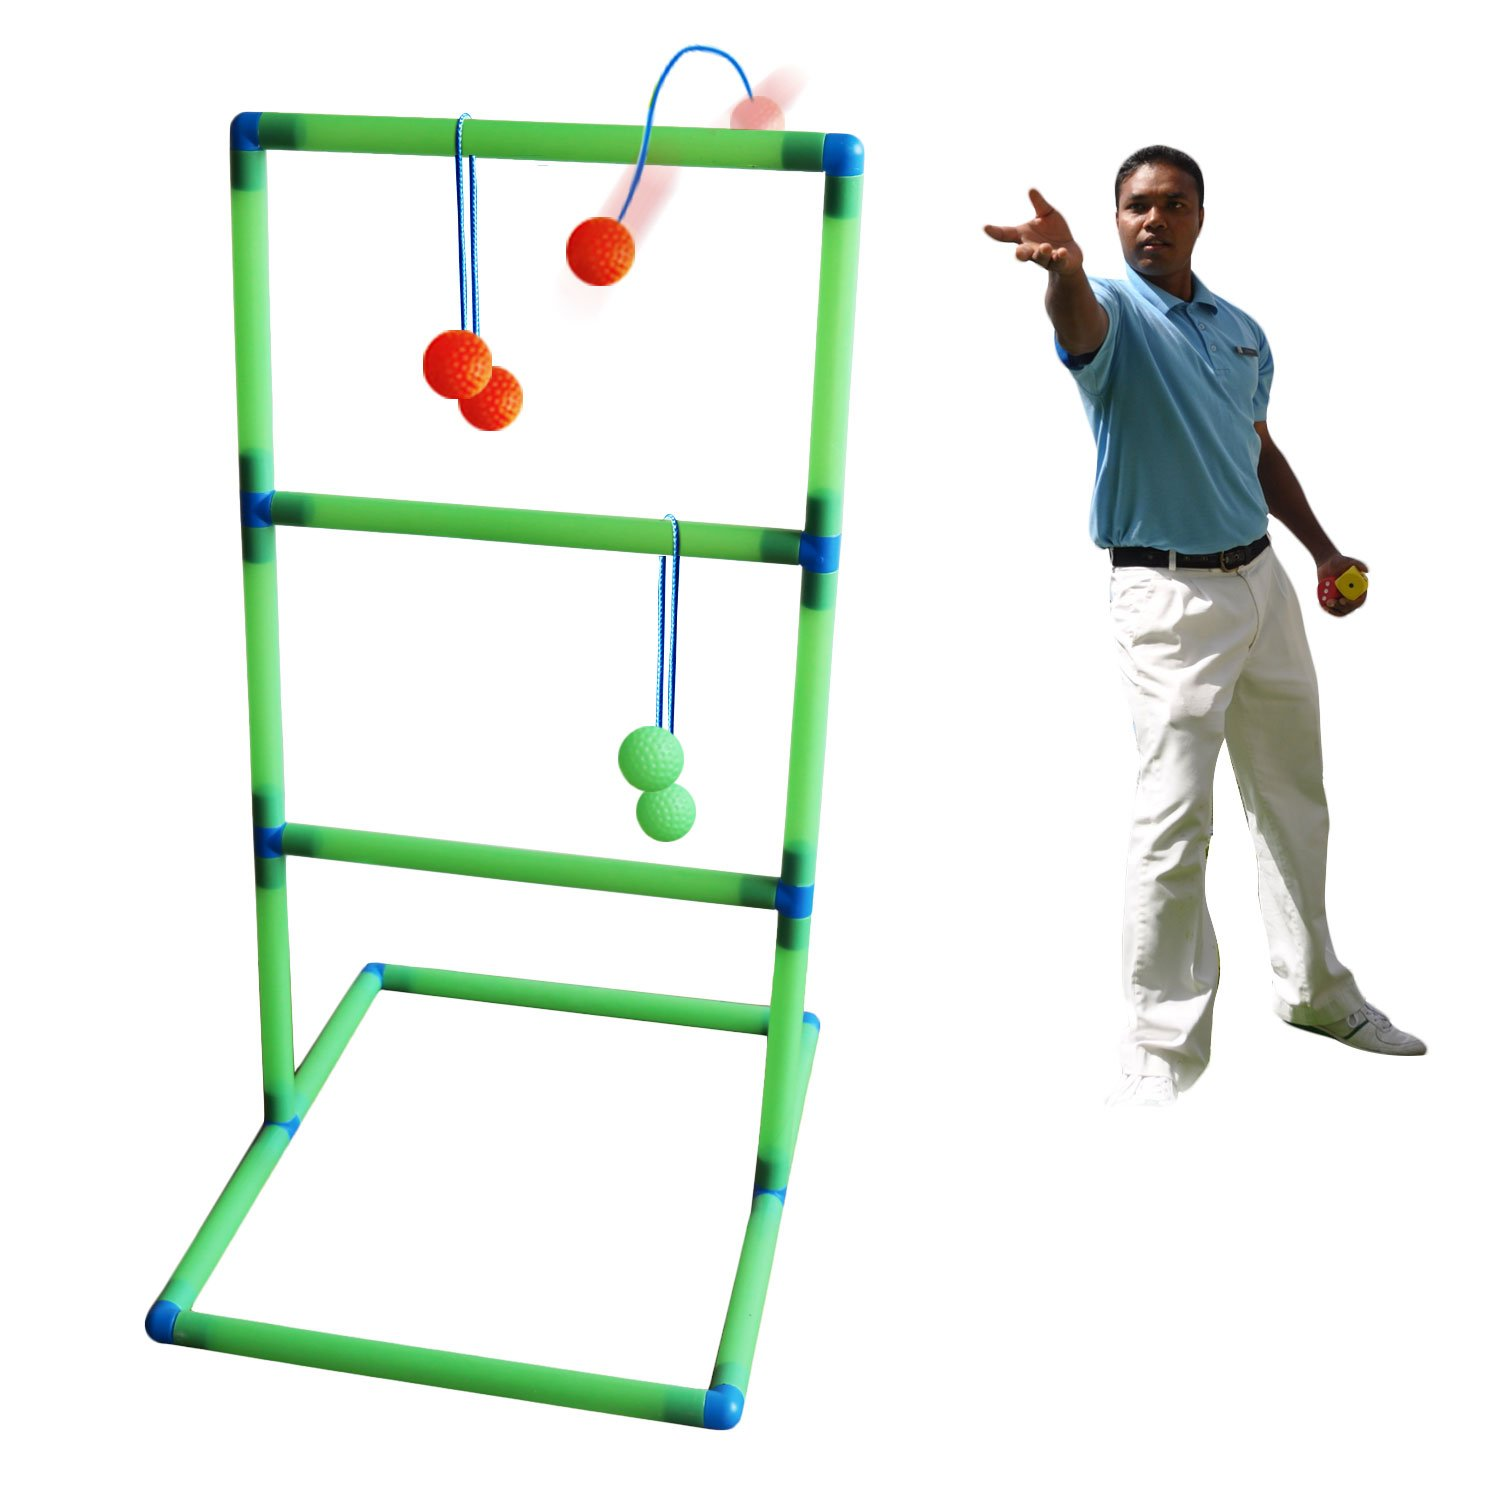 Freshday Luminous Ladder Ball Game Set, with A Flashlight(Battery not Included), for Adults & Kids Game for - Backyard, Beach, Lawn, Pool, Camping